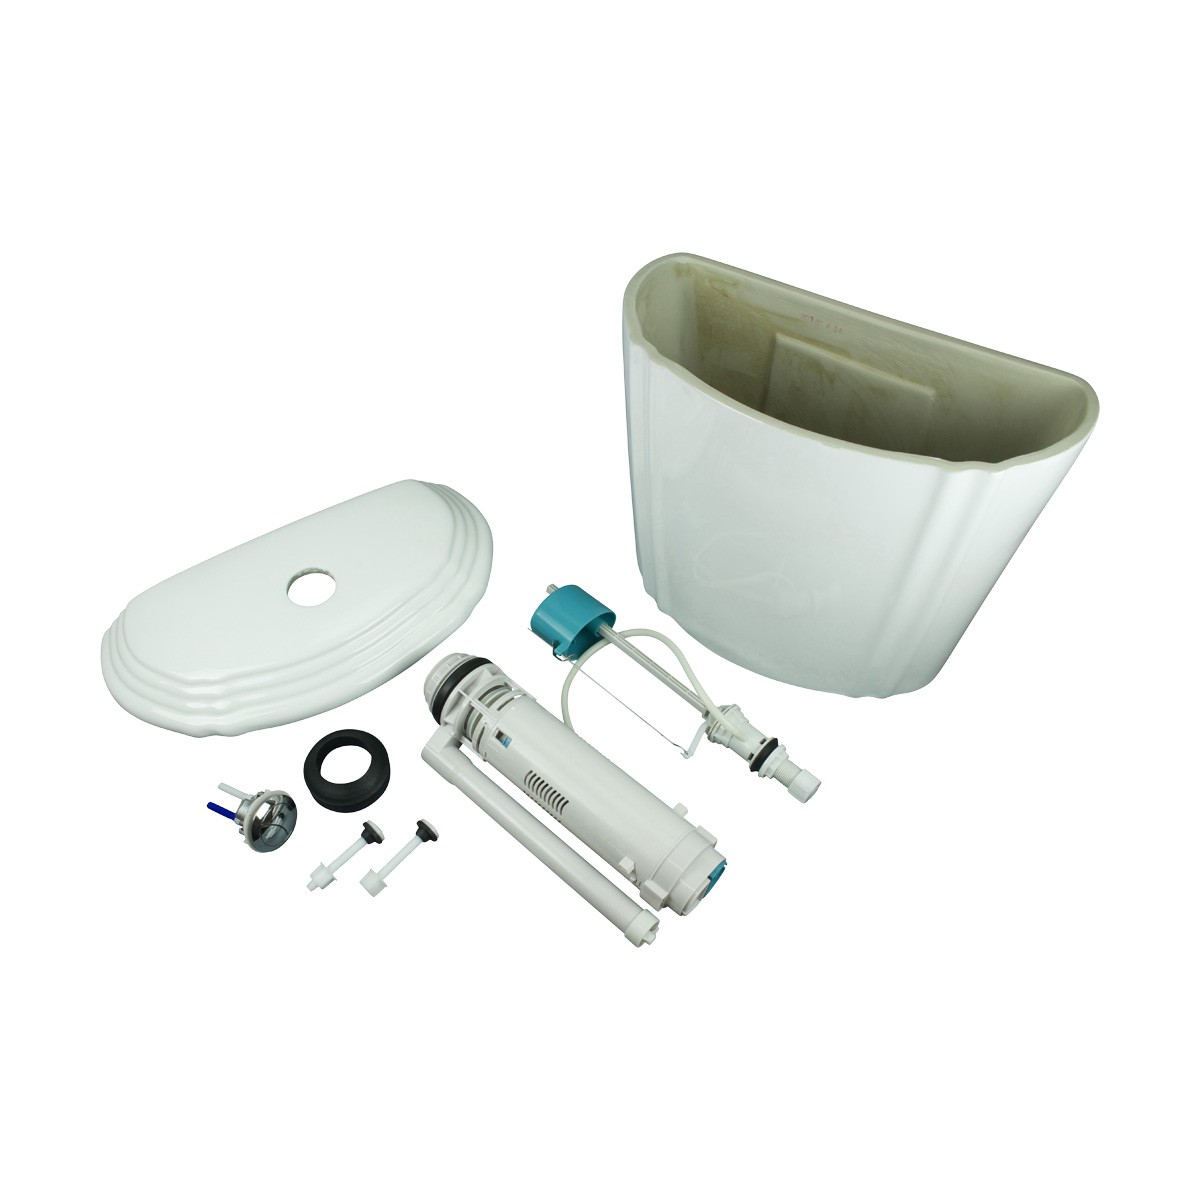 Toilet Part White Sheffield Dual Flush Toilet Tank Only Toilet Tank Only White Toilet Tank Dual Flush Toilet Tank